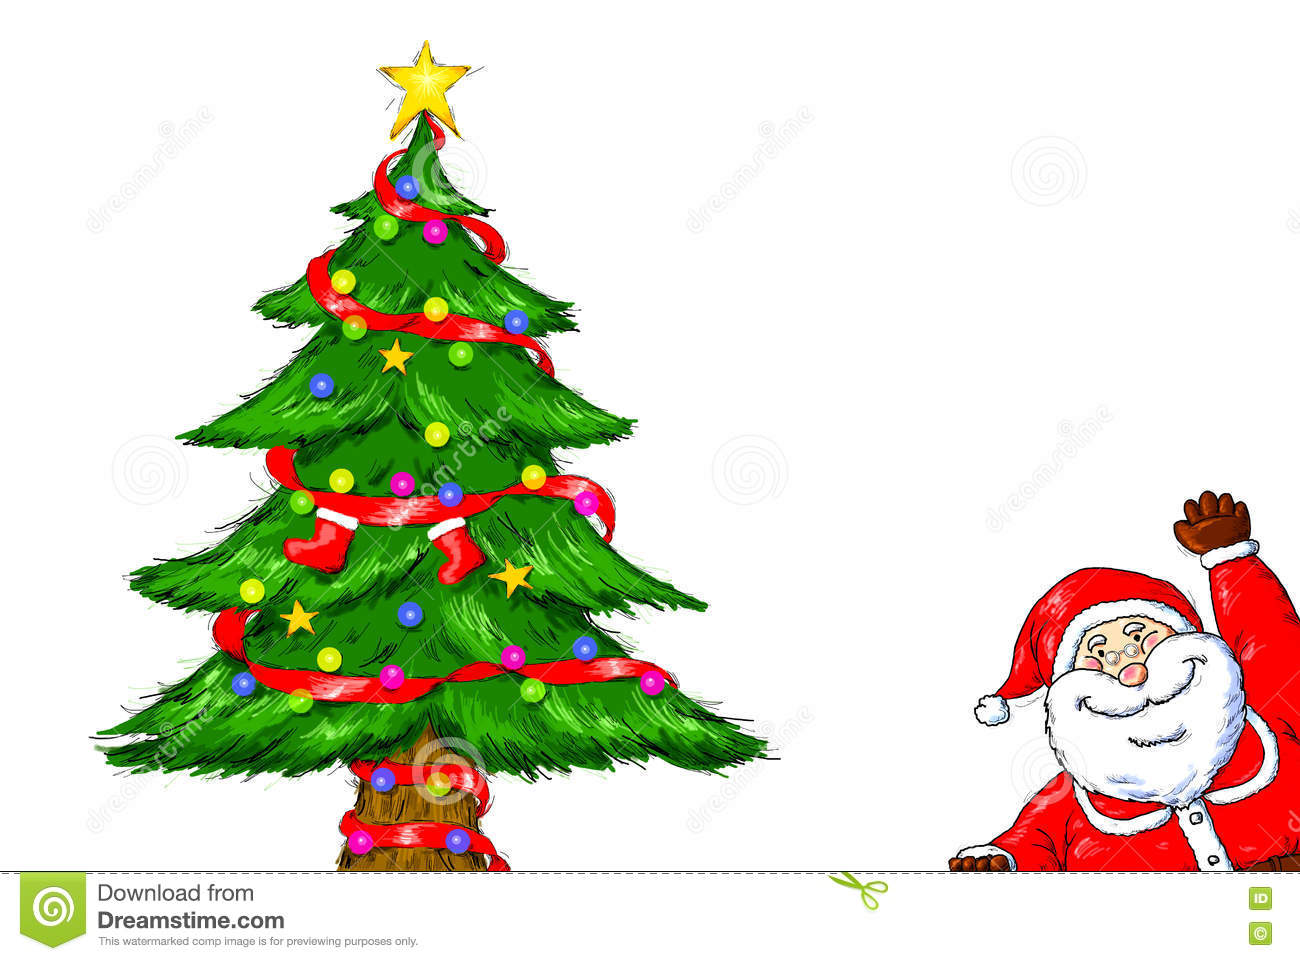 Christmas Celebration Images For Drawing.Merry Christmas Santa Claus Christmas Tree Celebration Stock